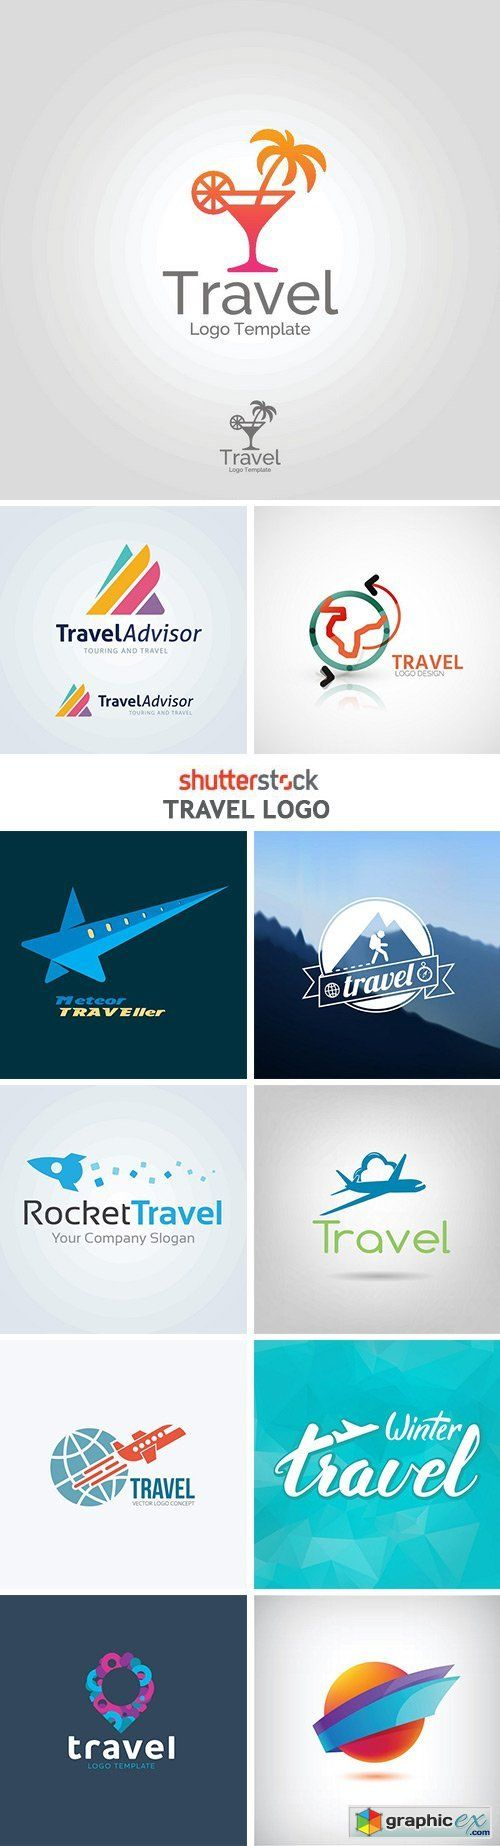 Travel Logo - 25xEPS